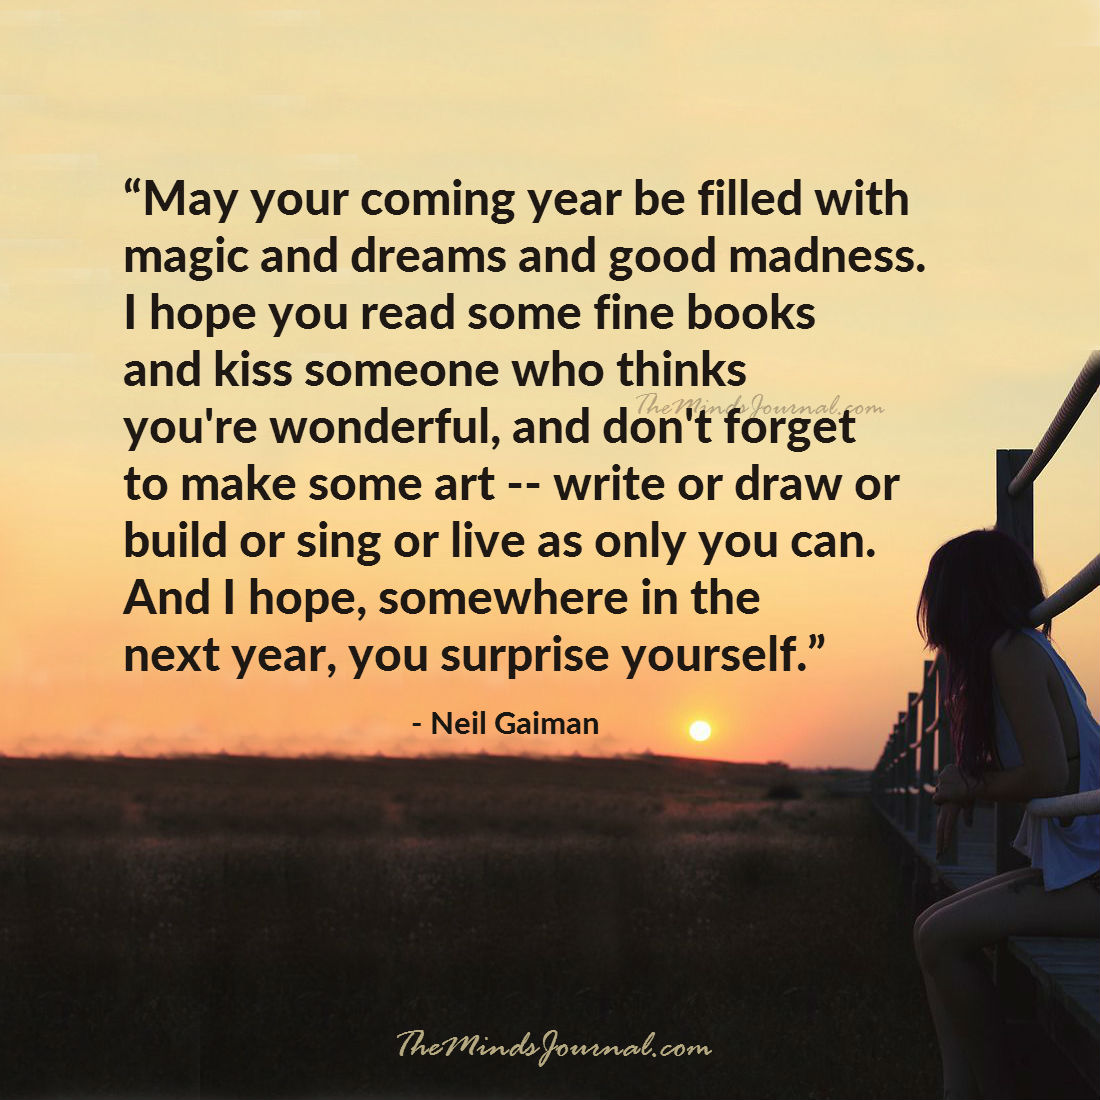 May your coming year